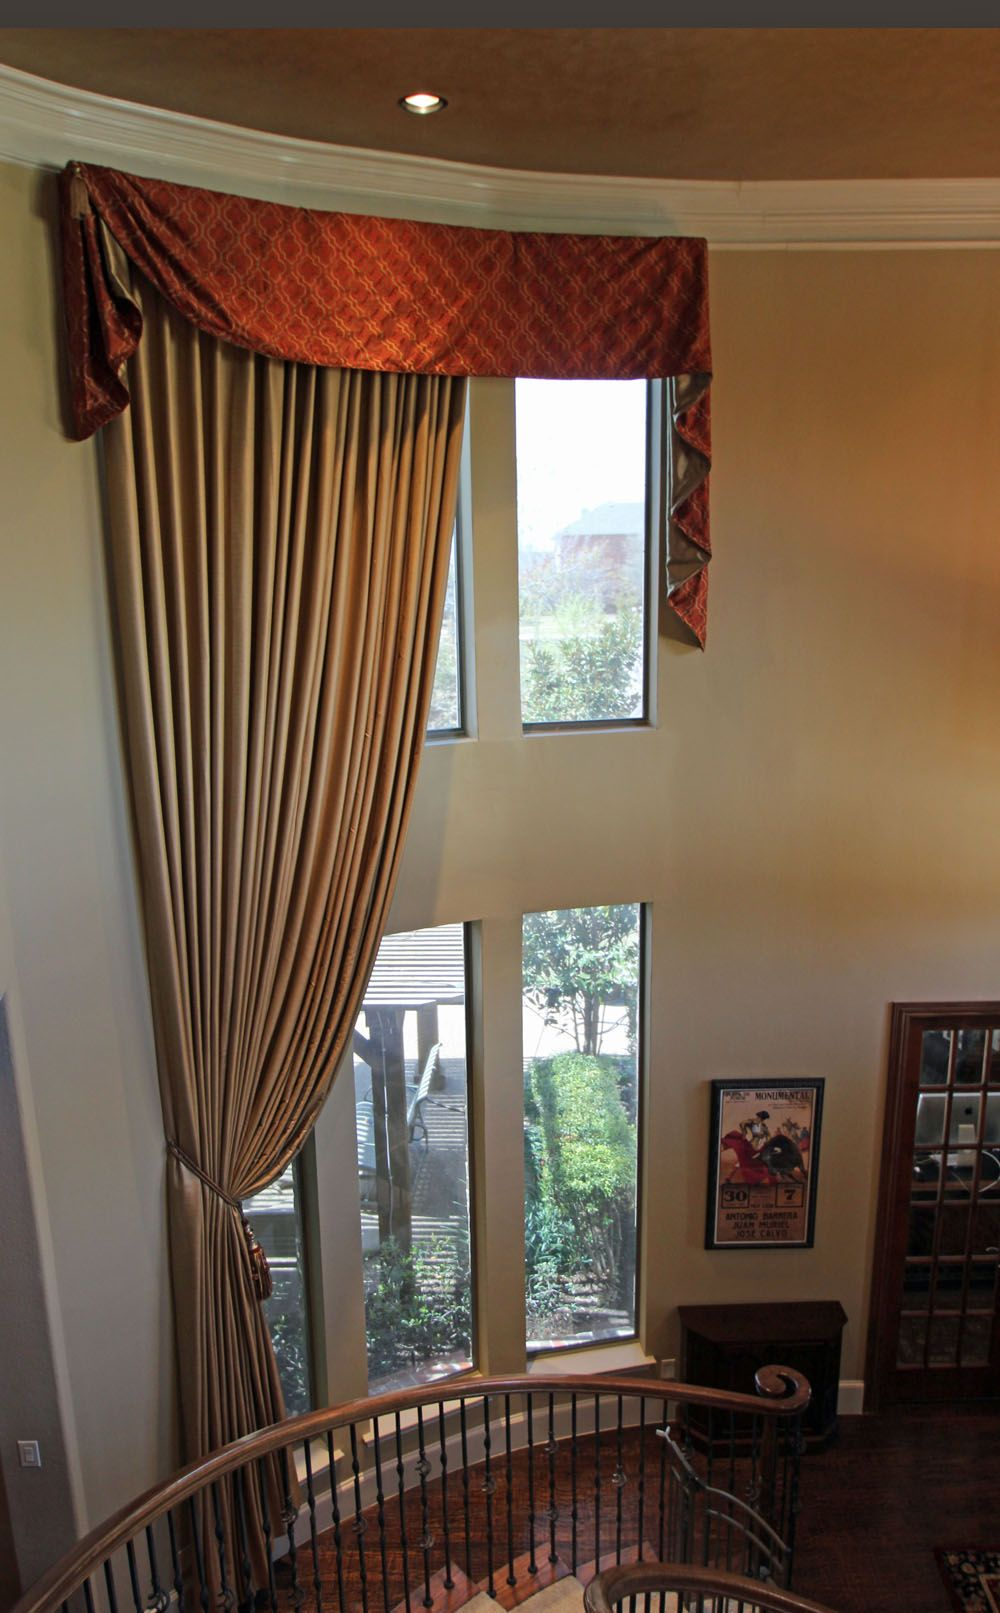 Dramatic 2 story window treatments dresses this slightly ...